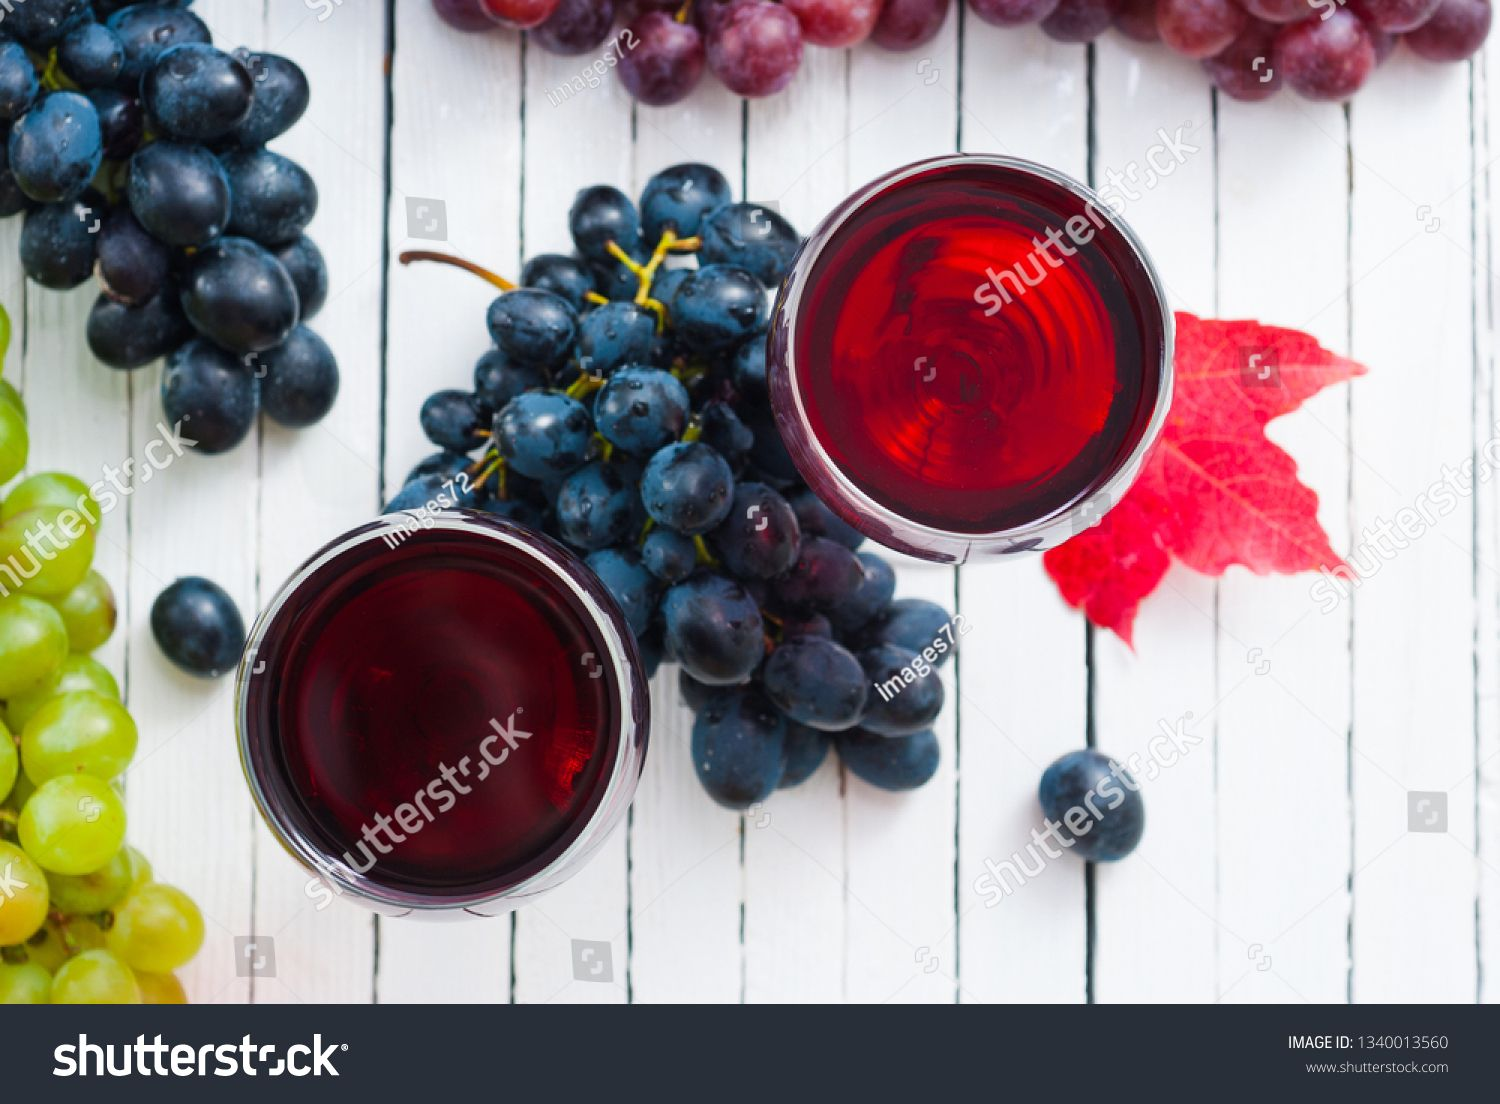 Two Glasses Of Red Wine And Grapes On White Wooden Table Background Ad Ad Wine Grapes Glasses Red In 2020 Grapes Red Wine Wine